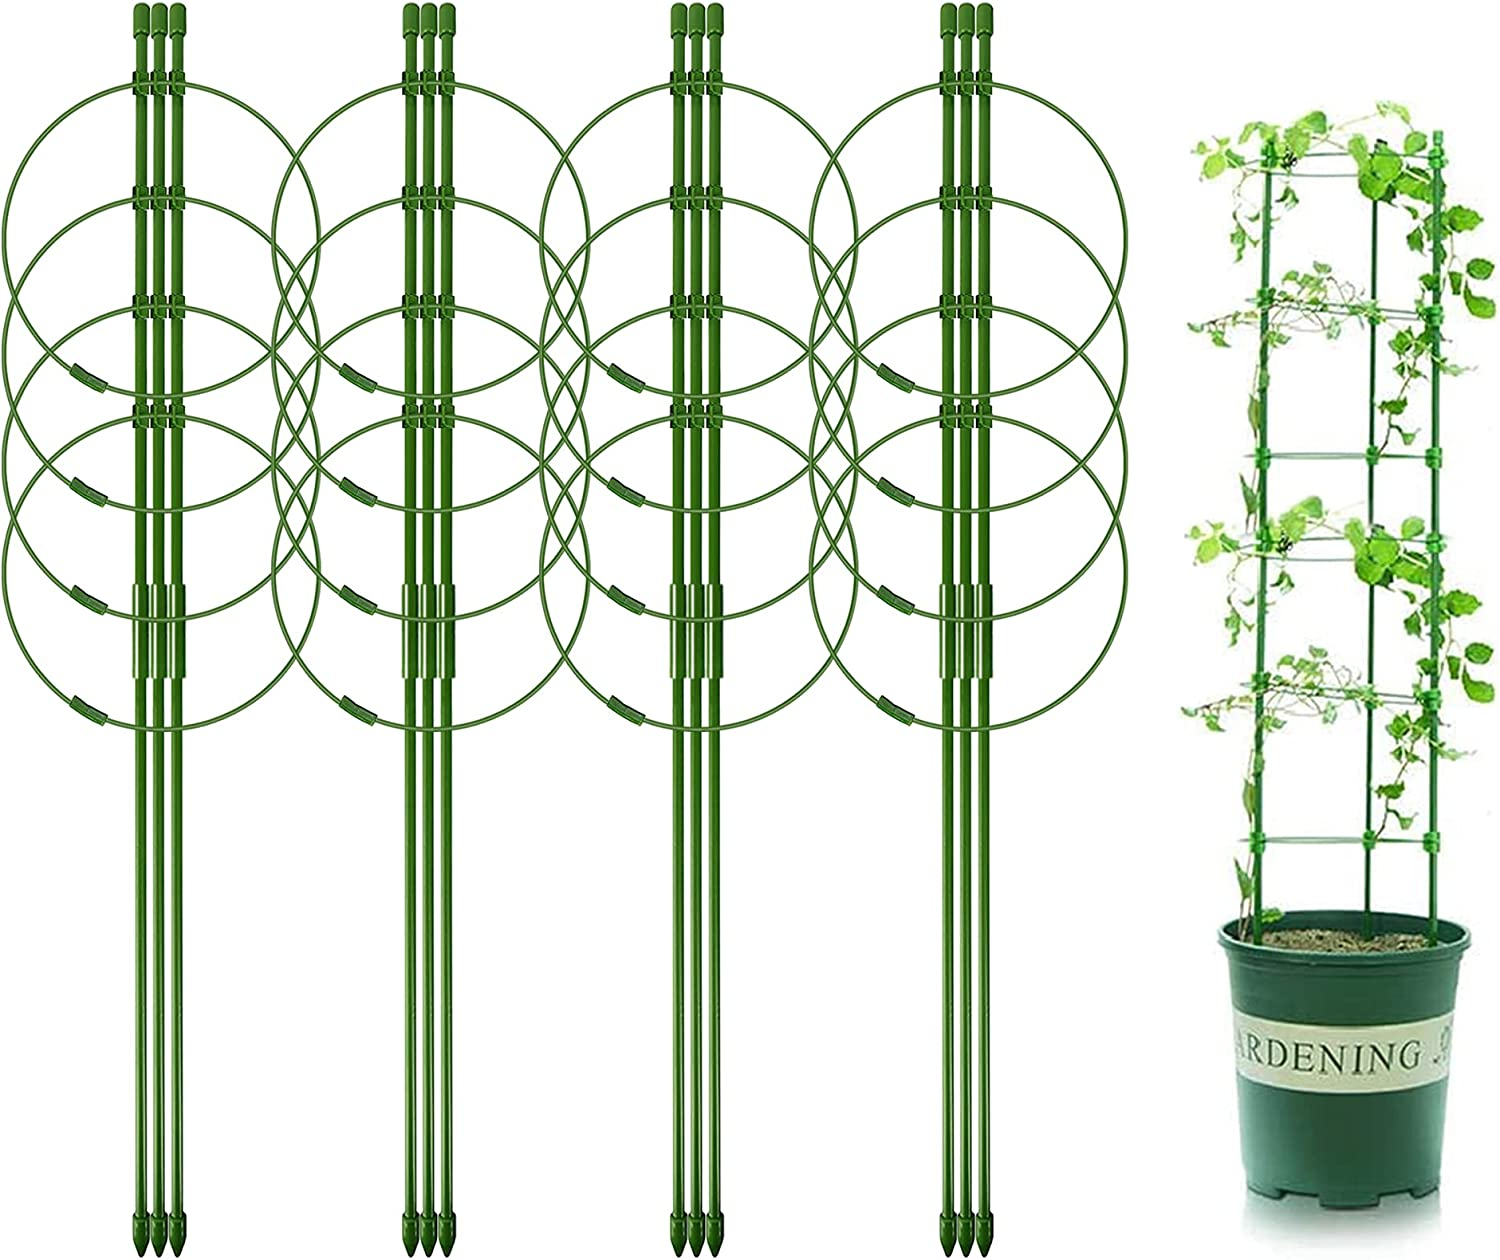 Legigo New products world's highest quality popular 4 Packs Plant Free Shipping New Support Rin Cages with Adjustable